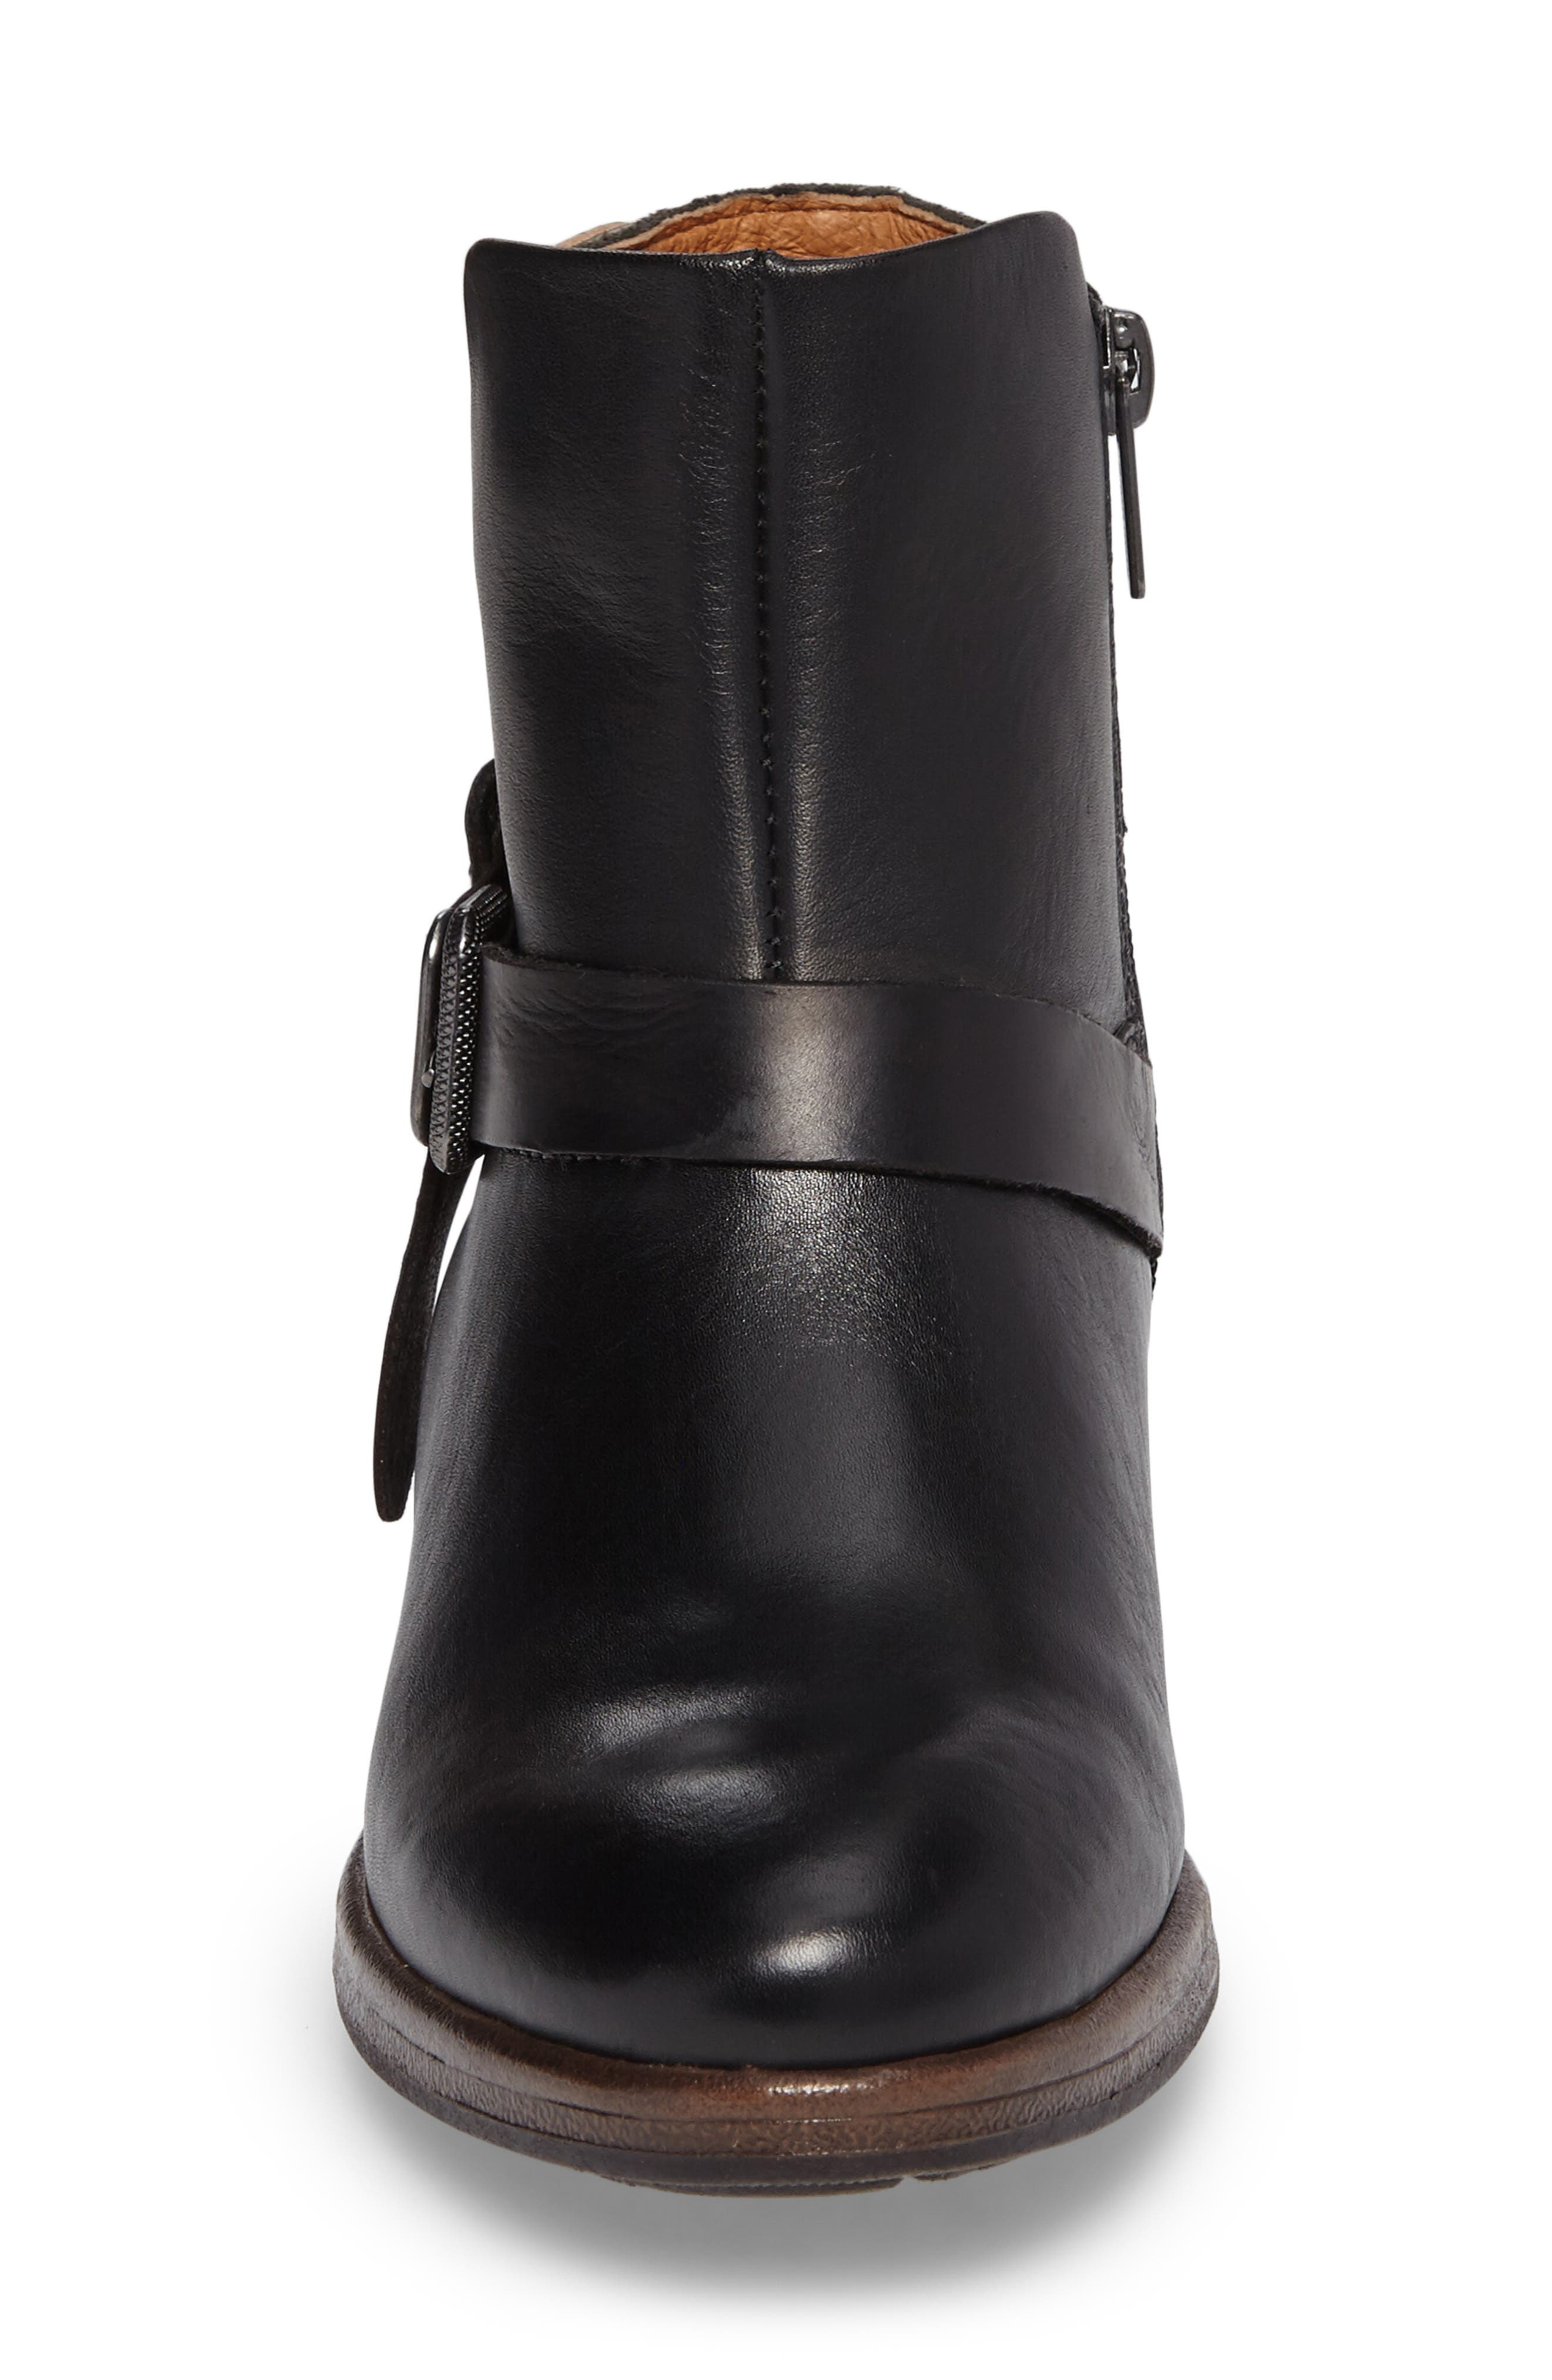 Ordino Bootie,                             Alternate thumbnail 4, color,                             Black Lead Leather